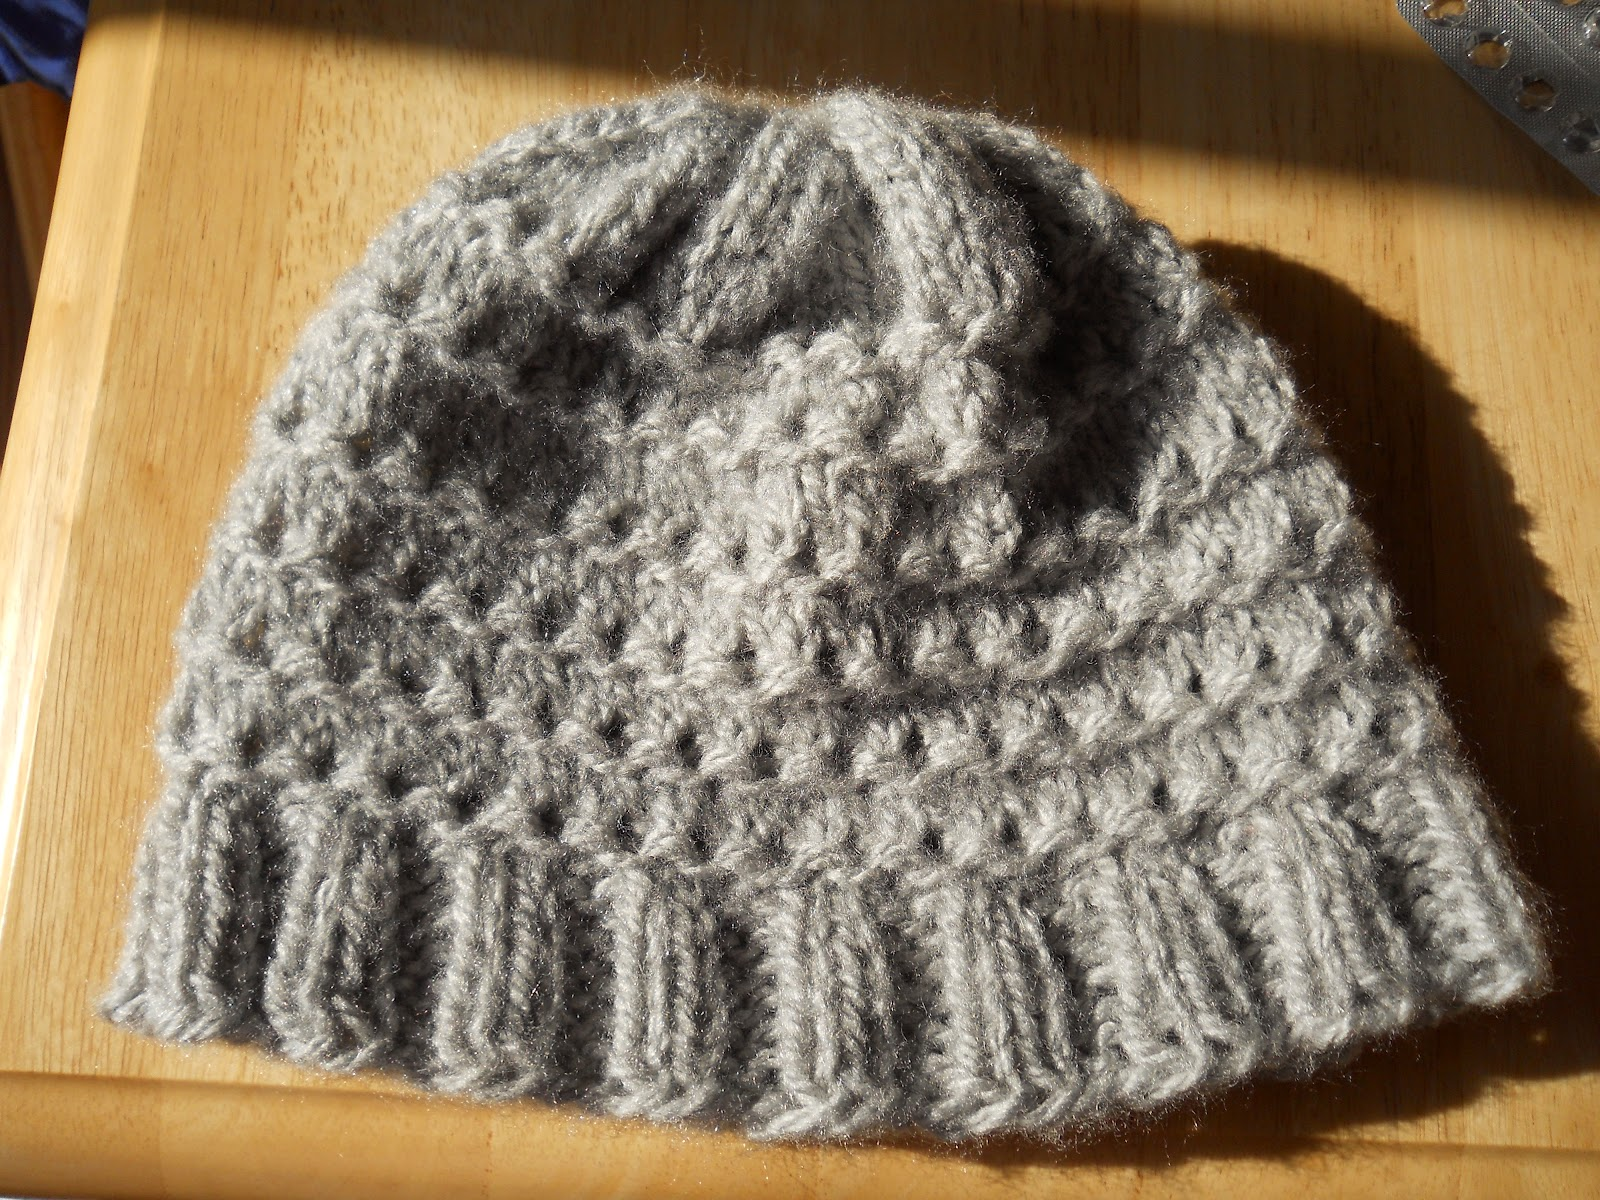 Knitting with Schnapps: Introducing the Links of Hope ...